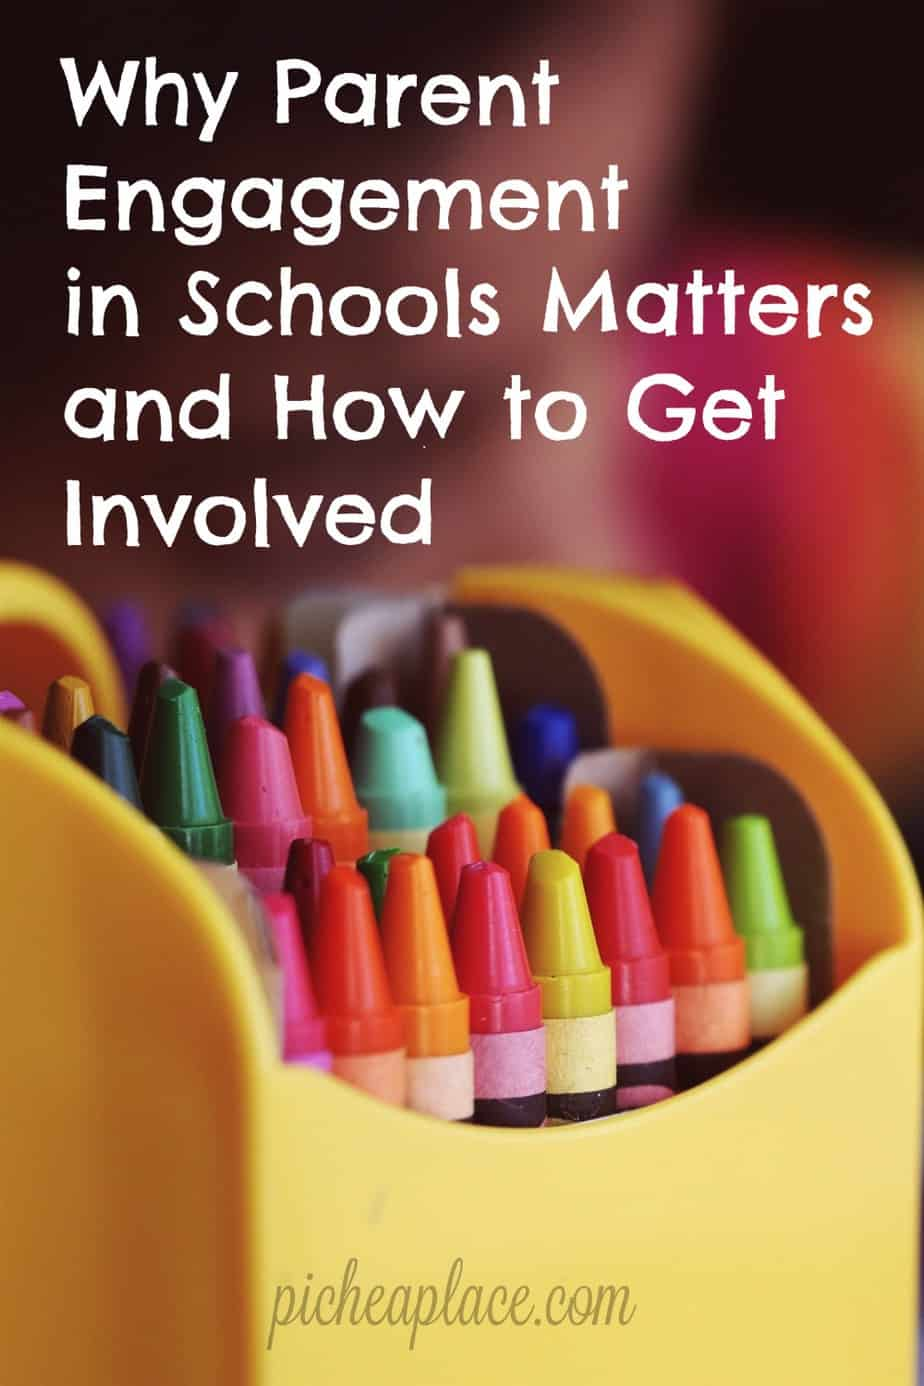 Why Parent Engagement in Schools Matters and How to Get Involved